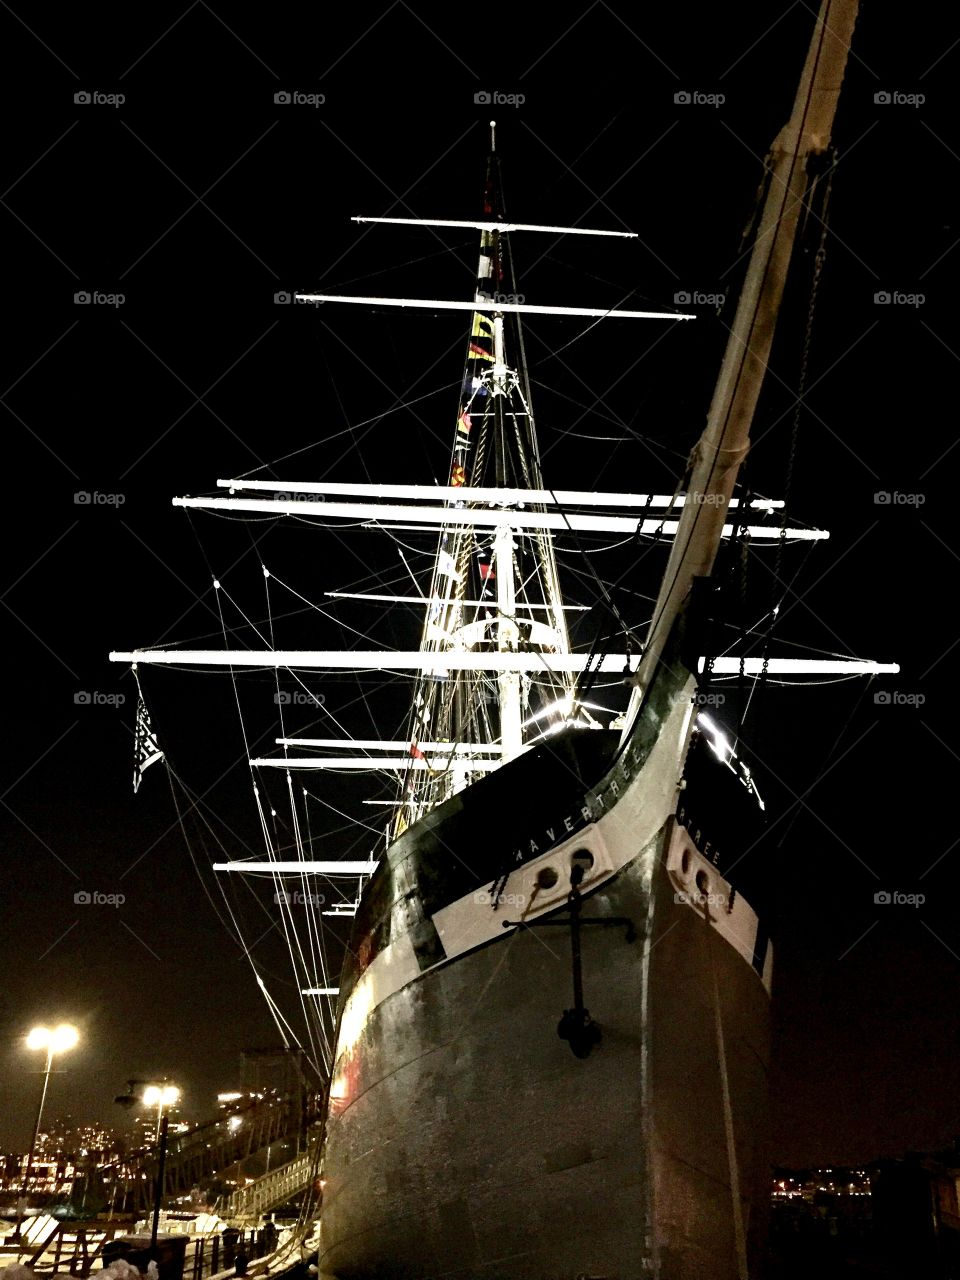 To reach a port we must set sail – Sail, not tie at anchor Sail, not drift. Franklin D. Roosevelt